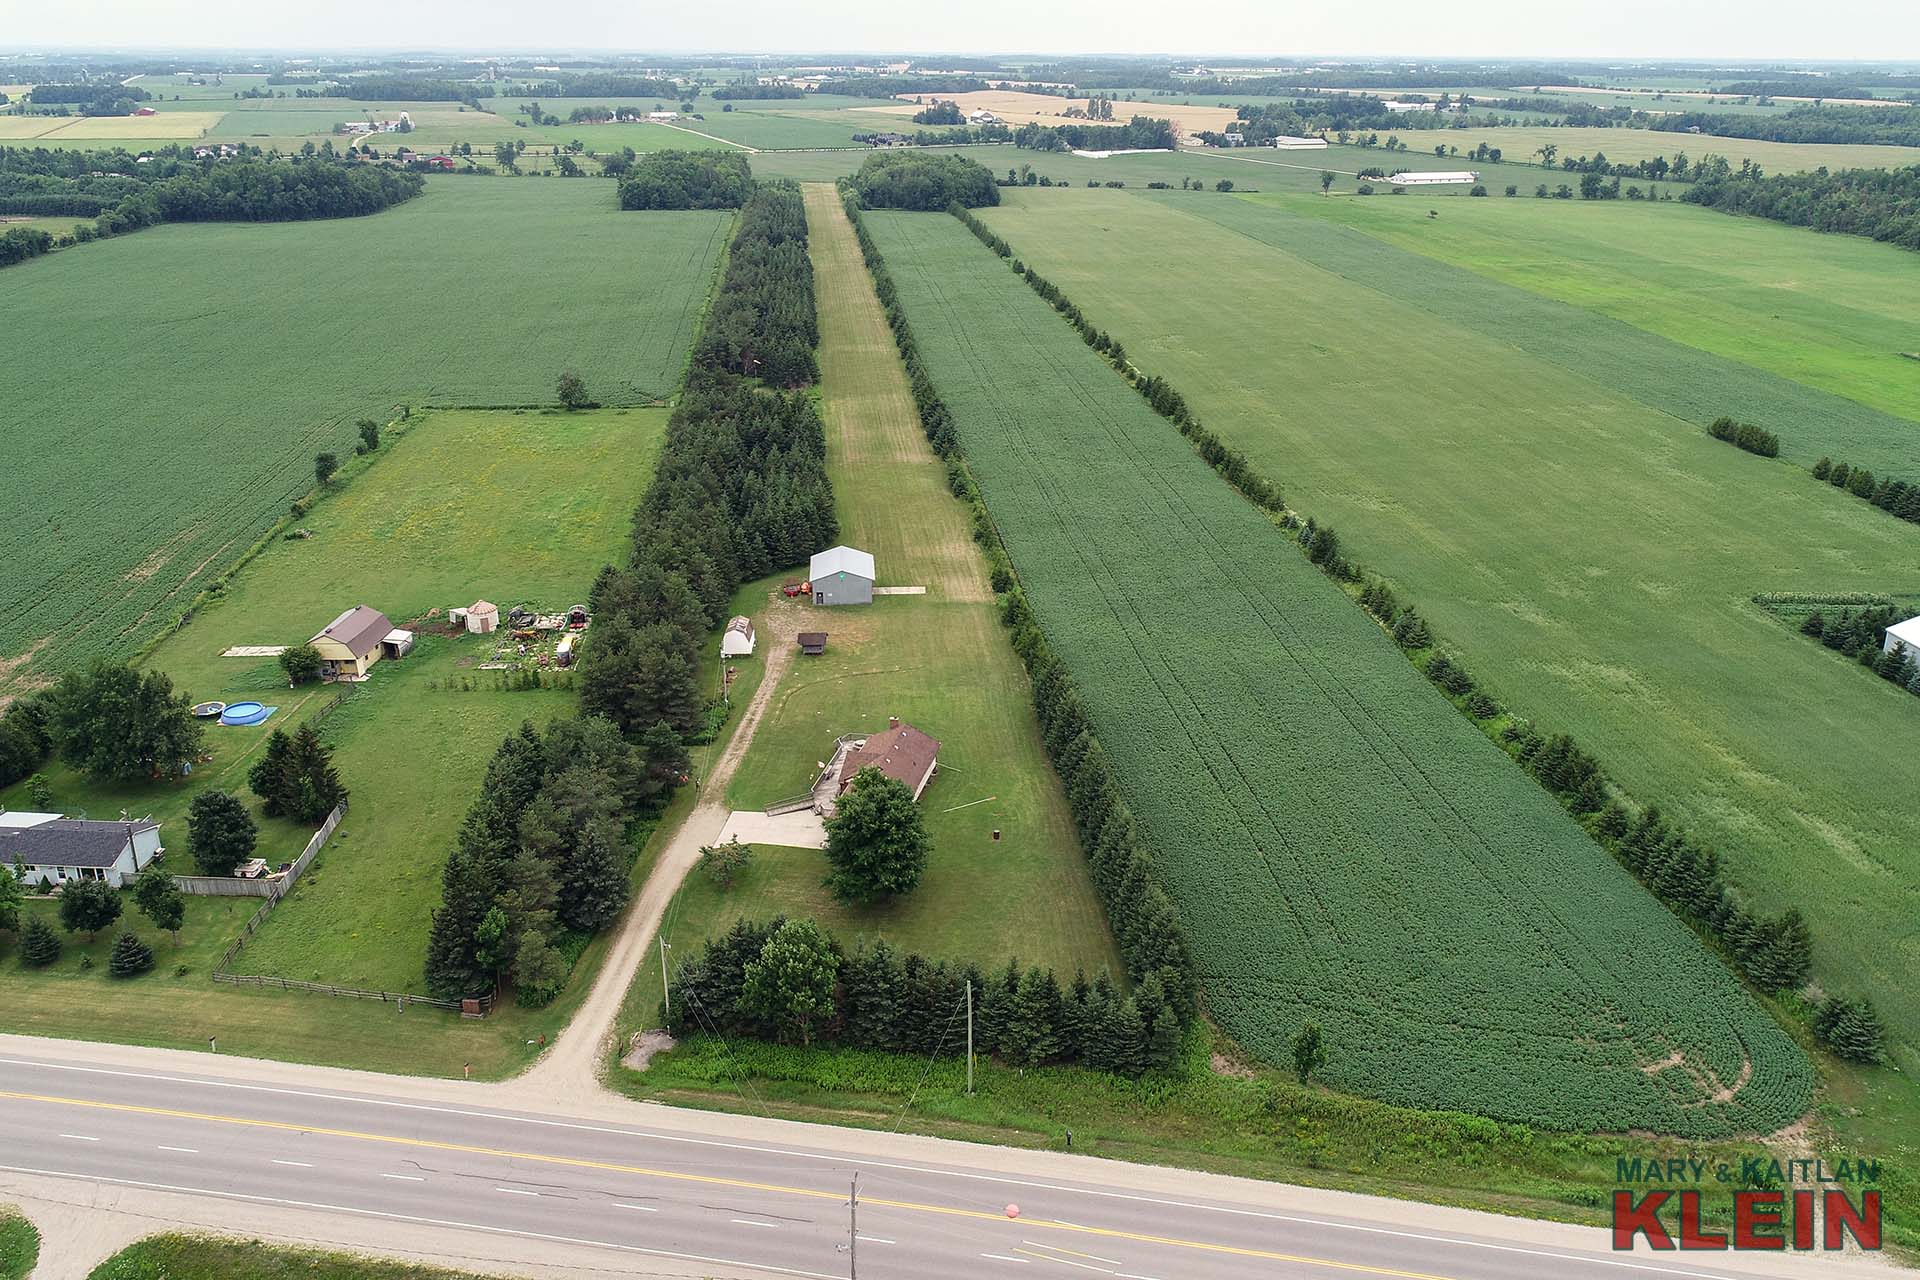 13+ Acres w/ Grass Landing Strip, Home For Sale, Arthur, Ontario